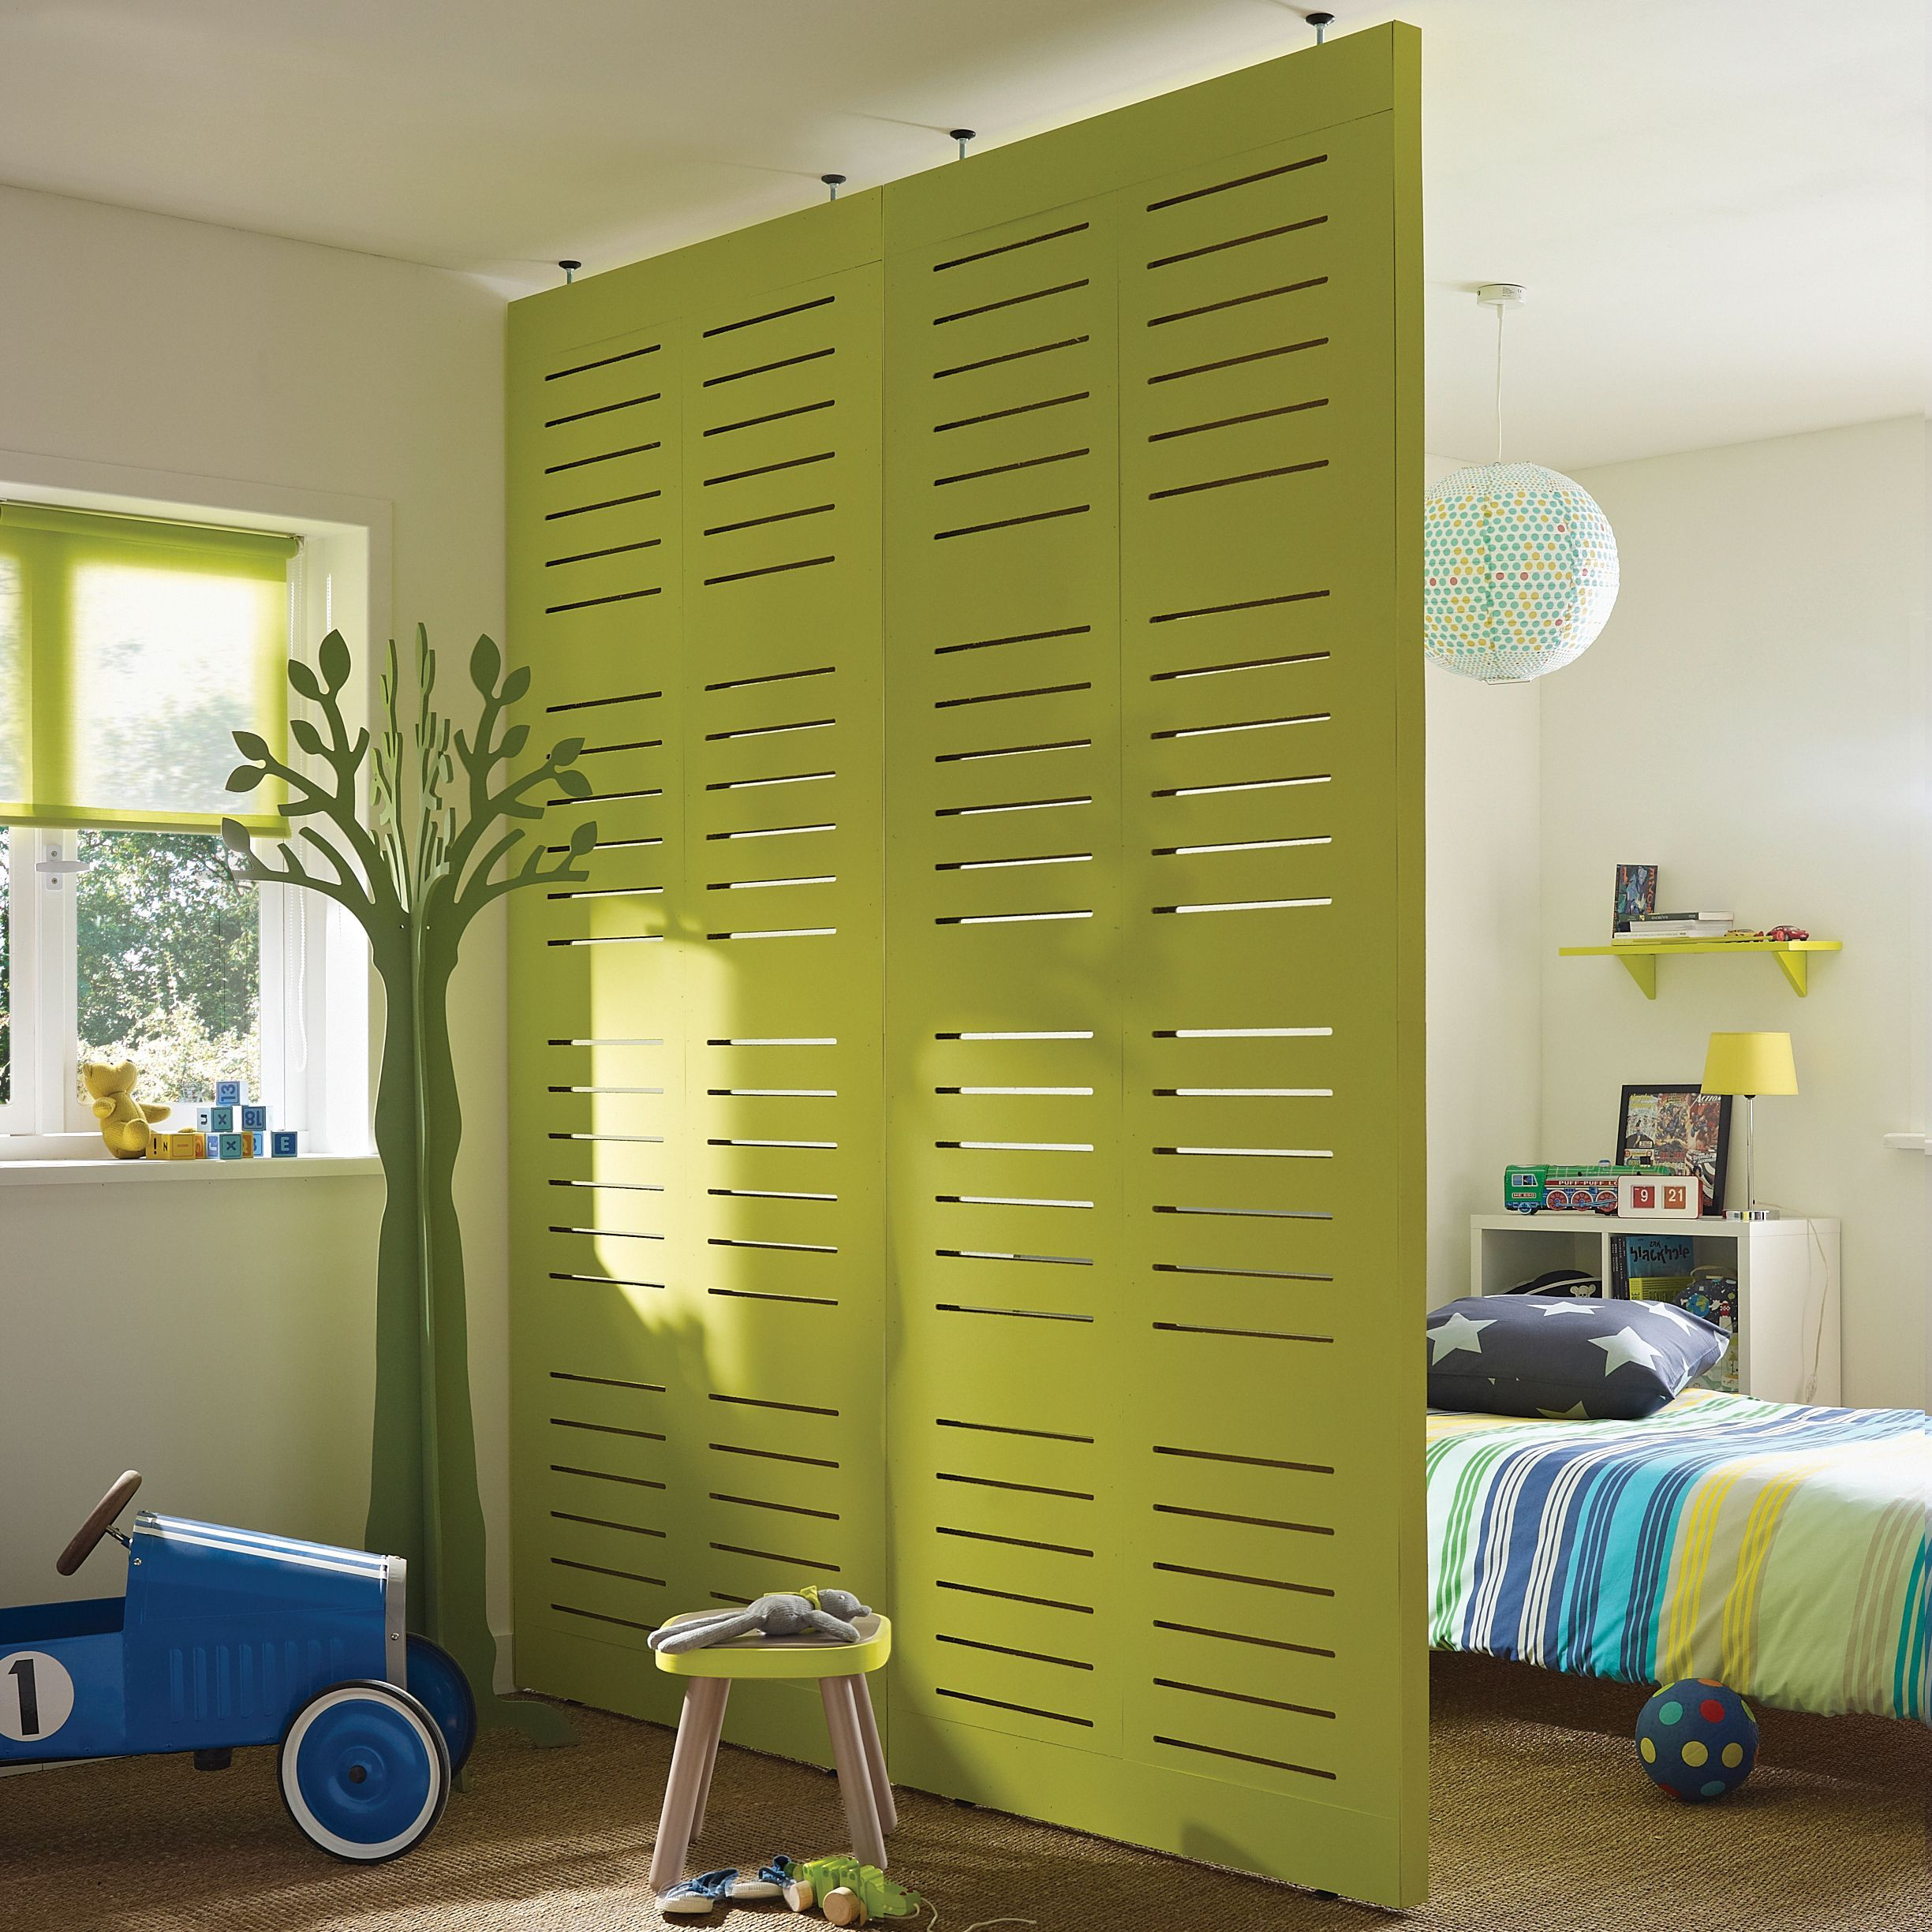 Karalis Room Divider | Patio doors, Patios and Doors